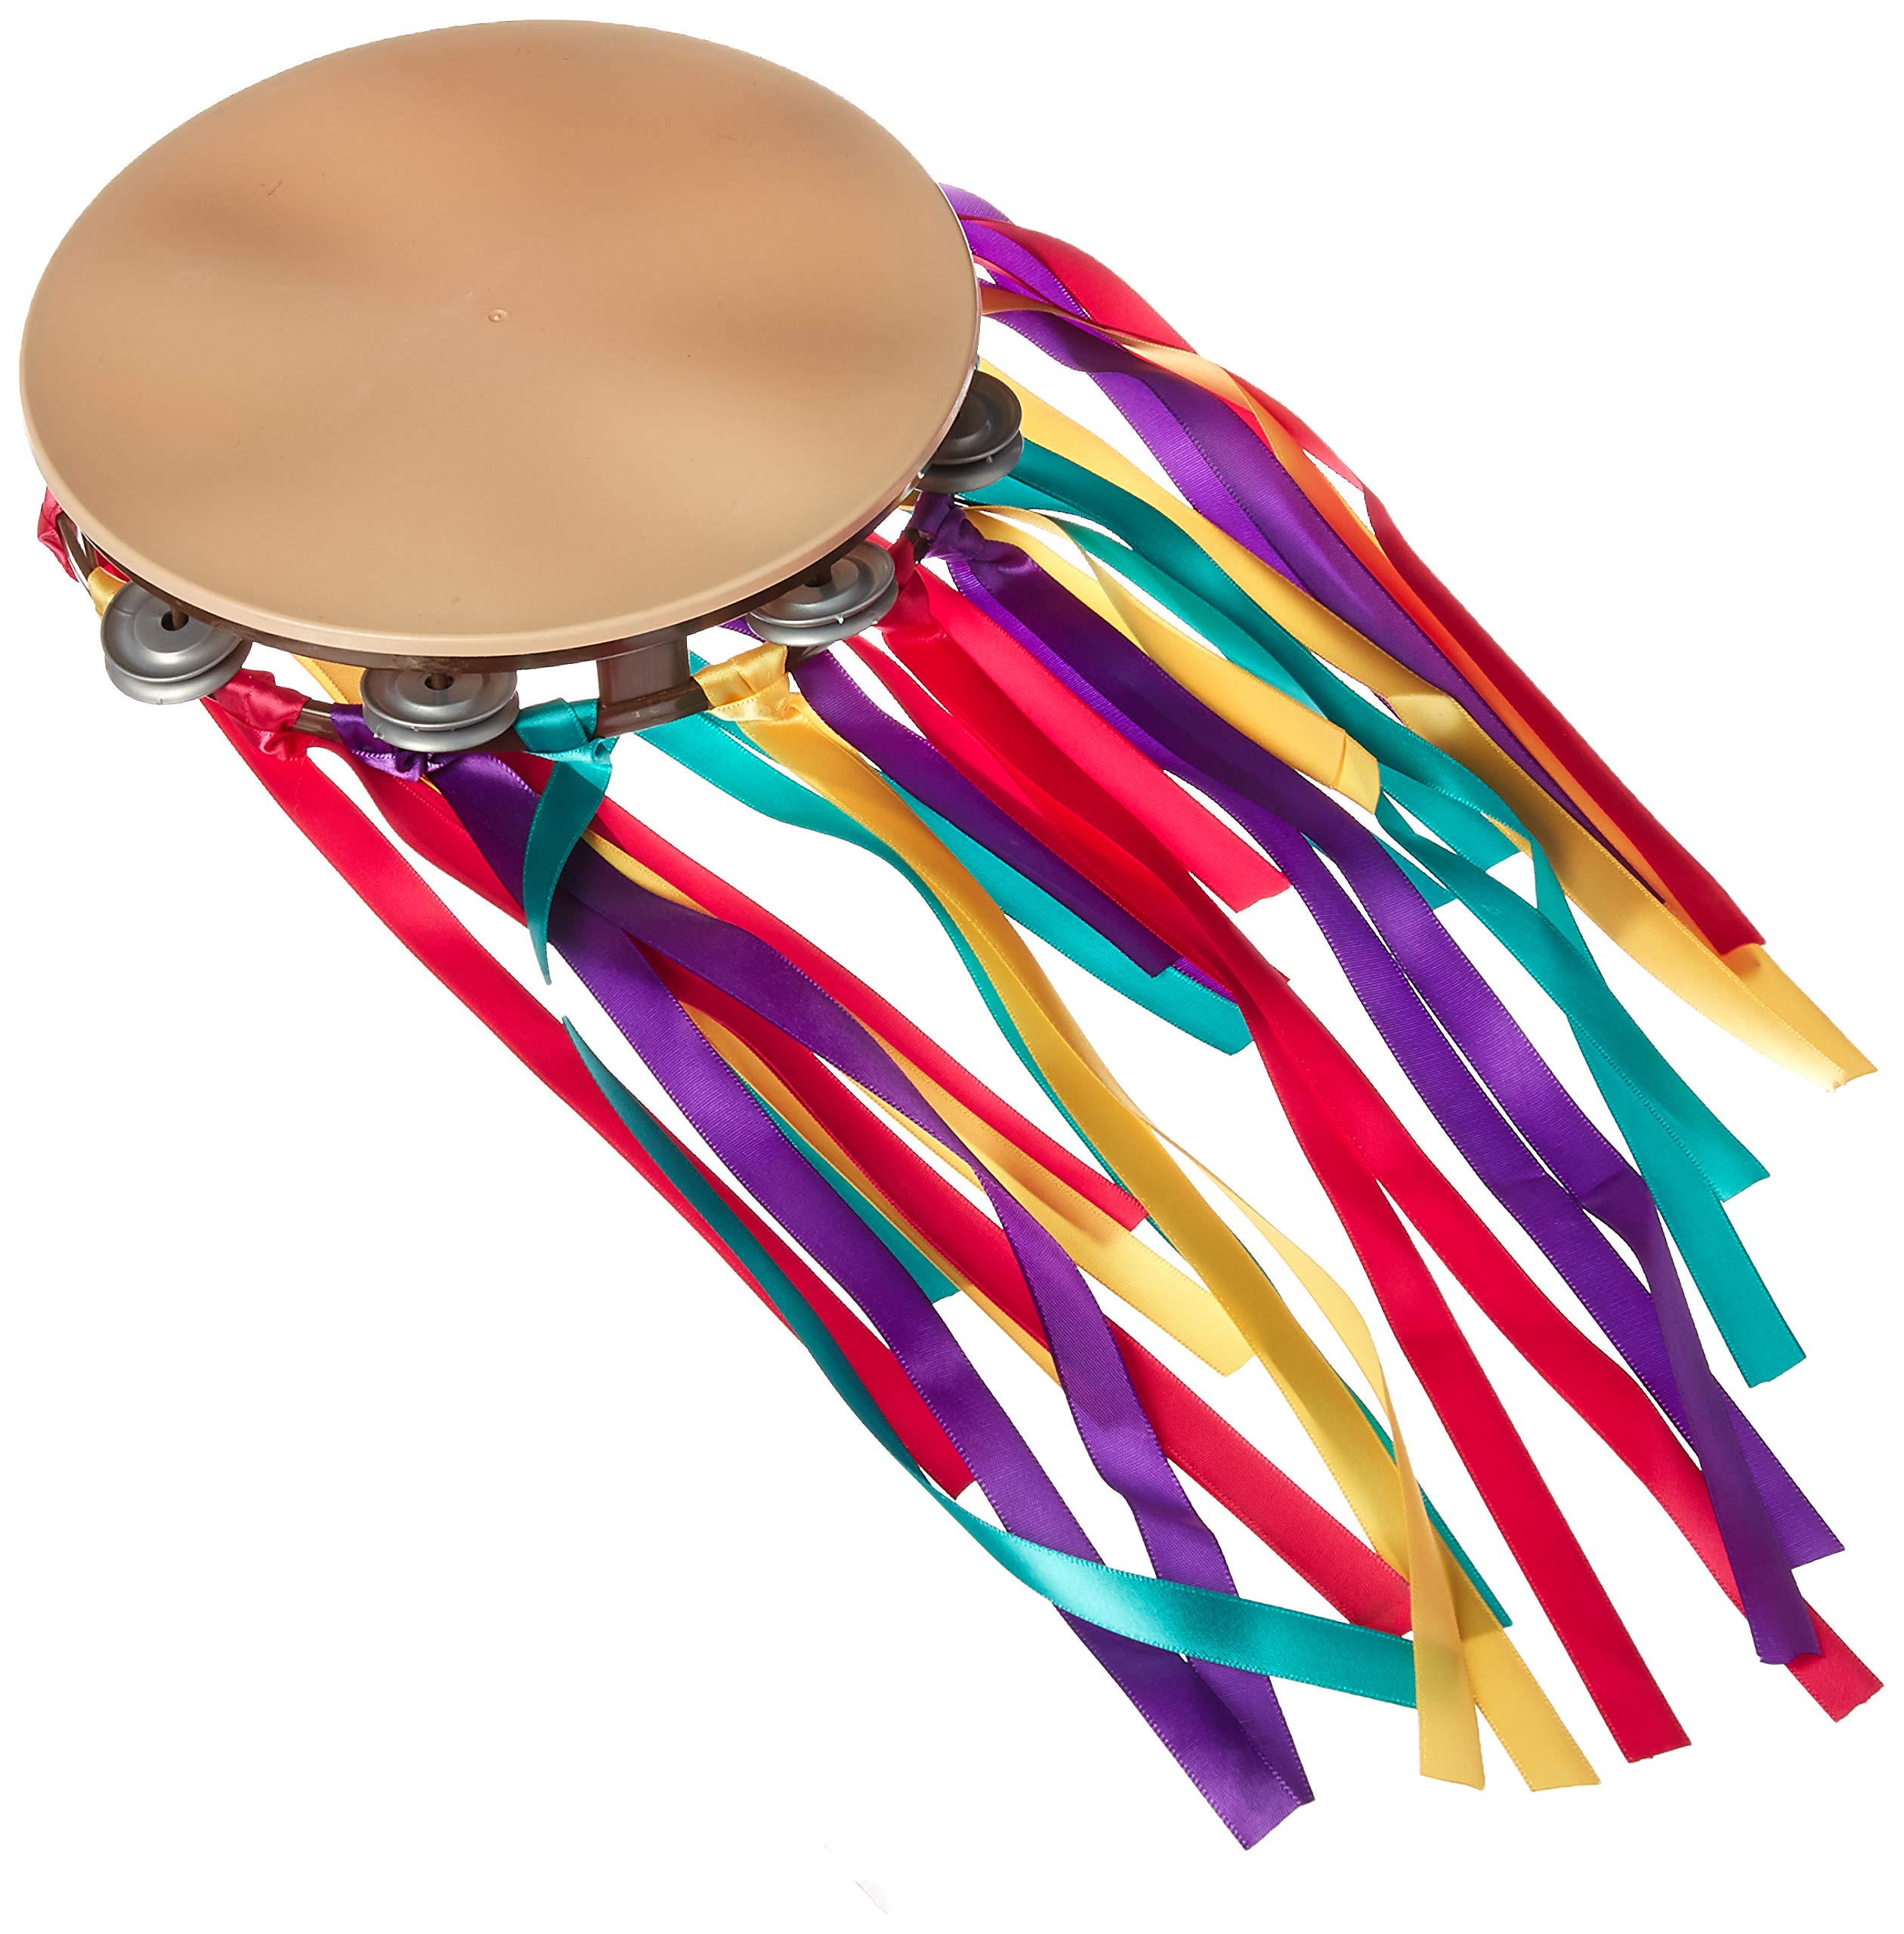 amscan Festival Tambourine, One Size, Multicolor by amscan